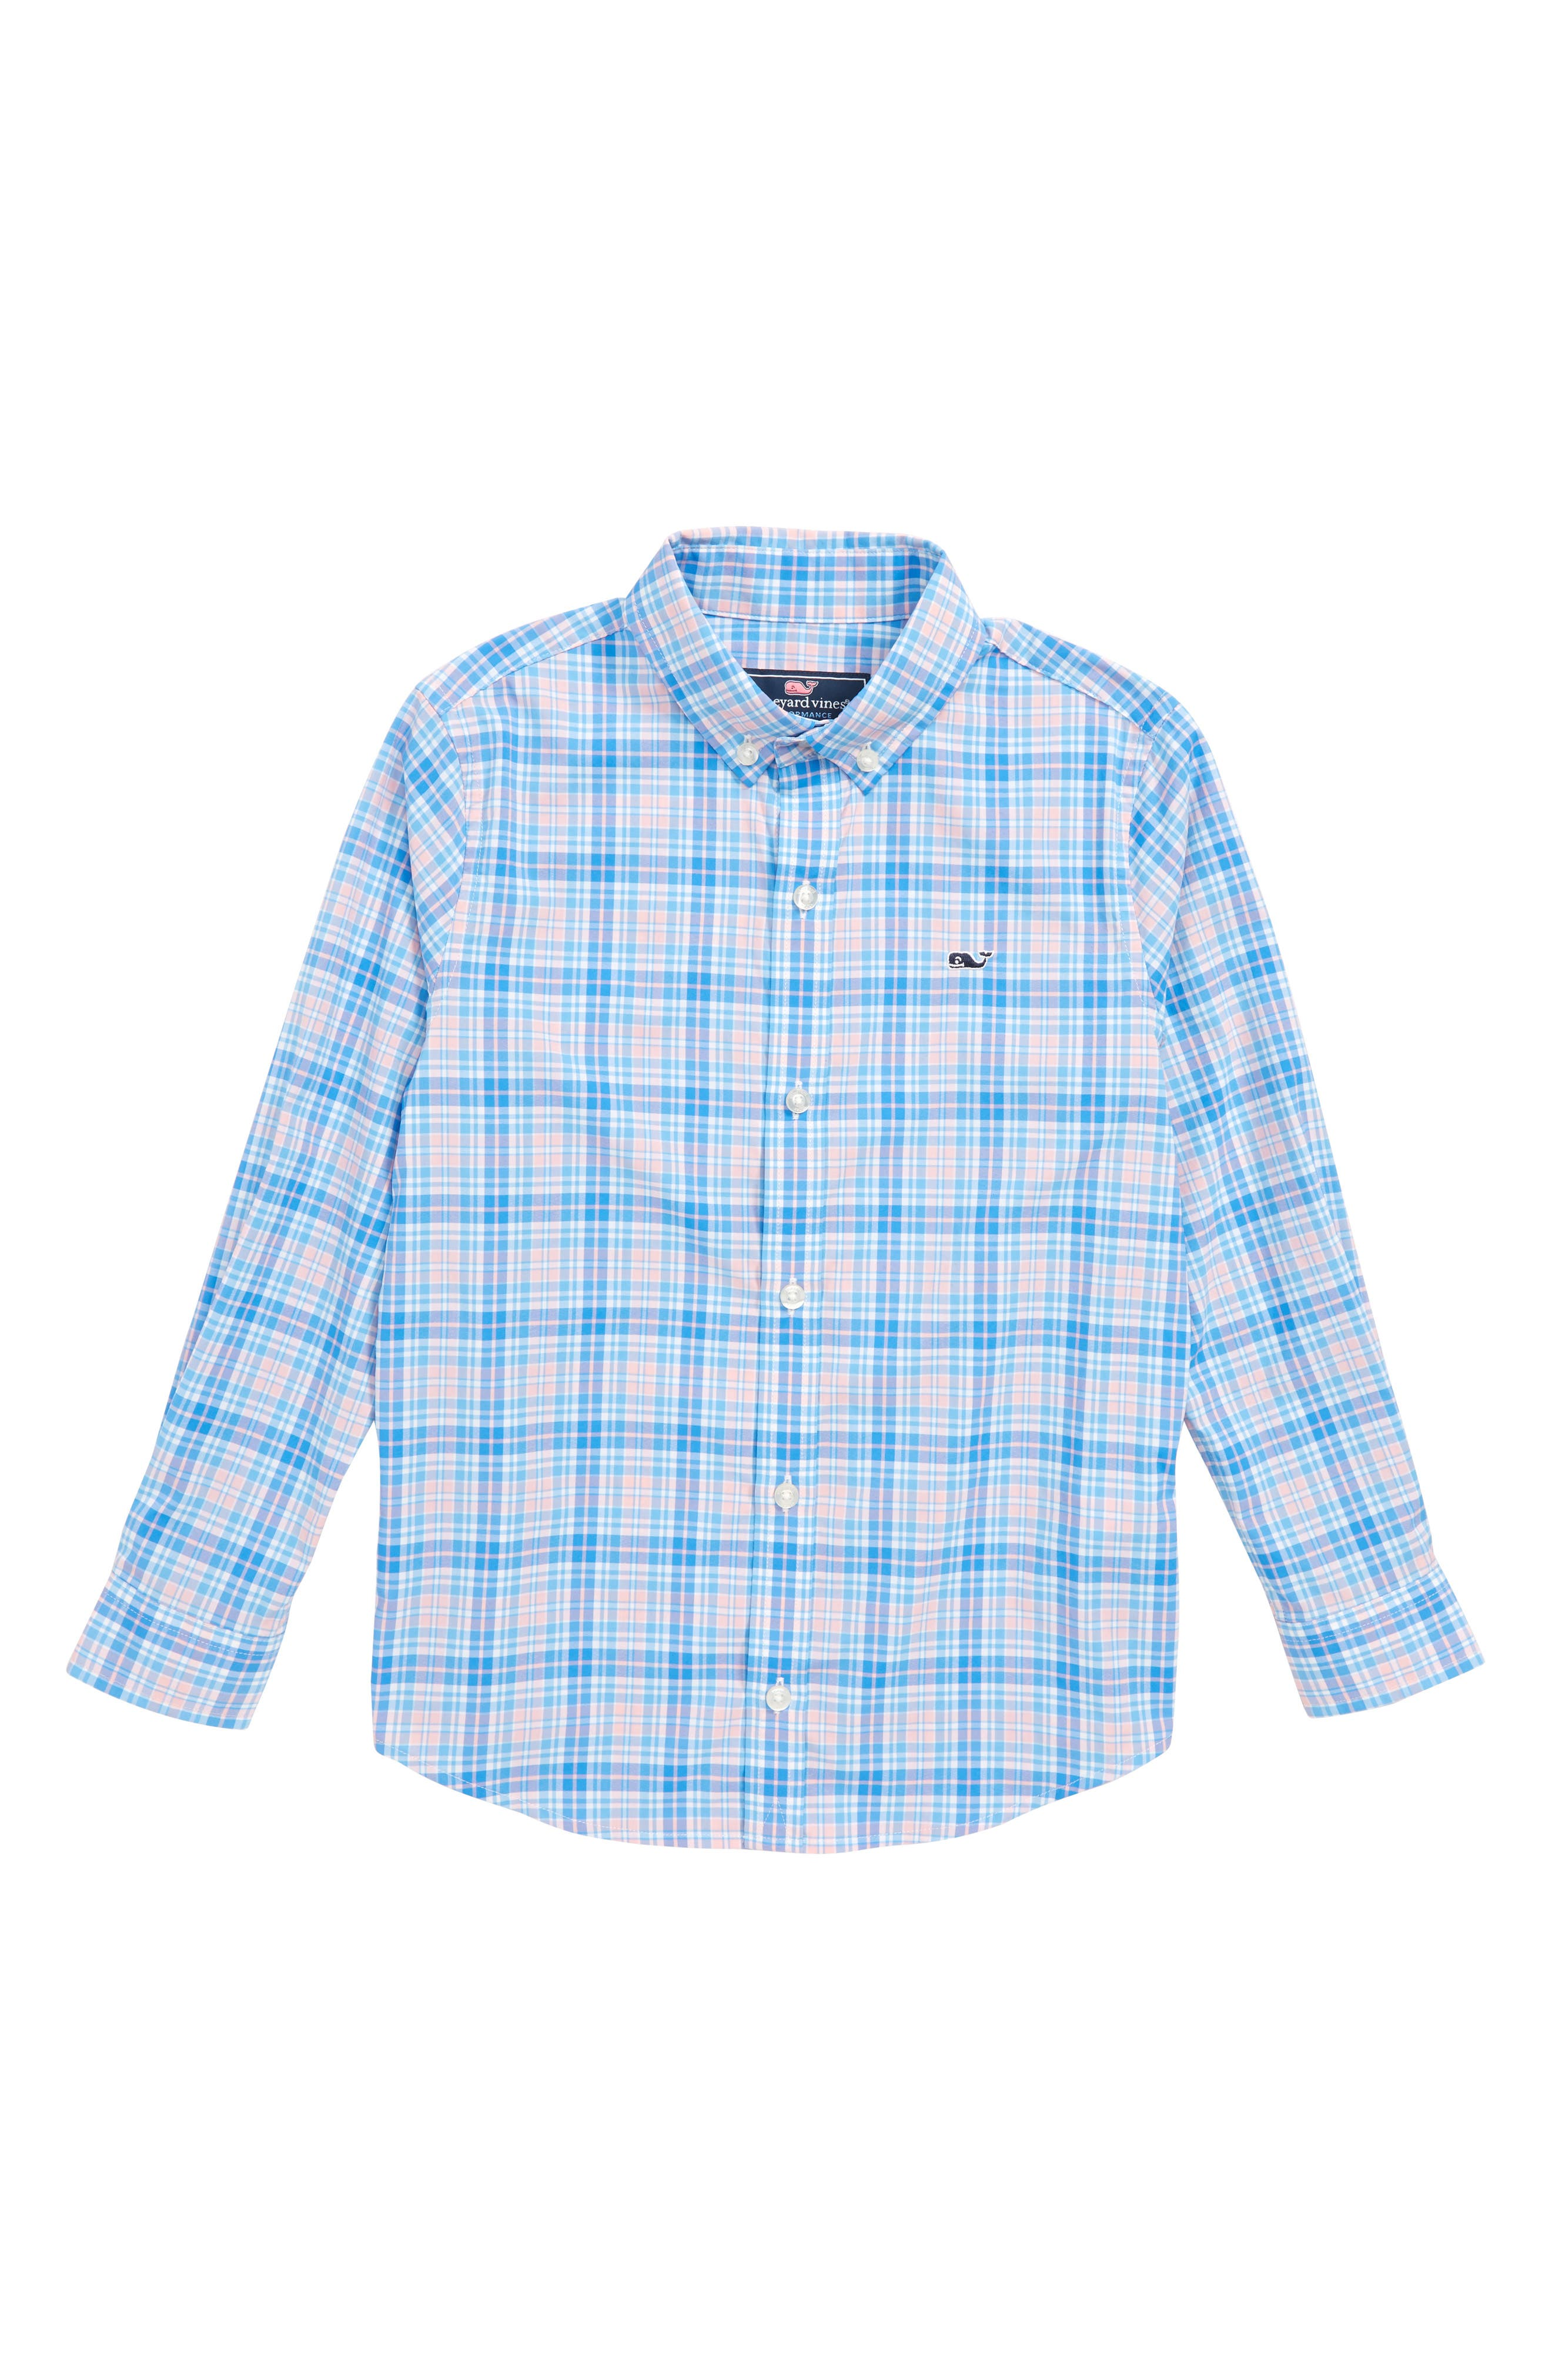 Stoney Hill Plaid Whale Shirt,                             Main thumbnail 1, color,                             Hibiscus